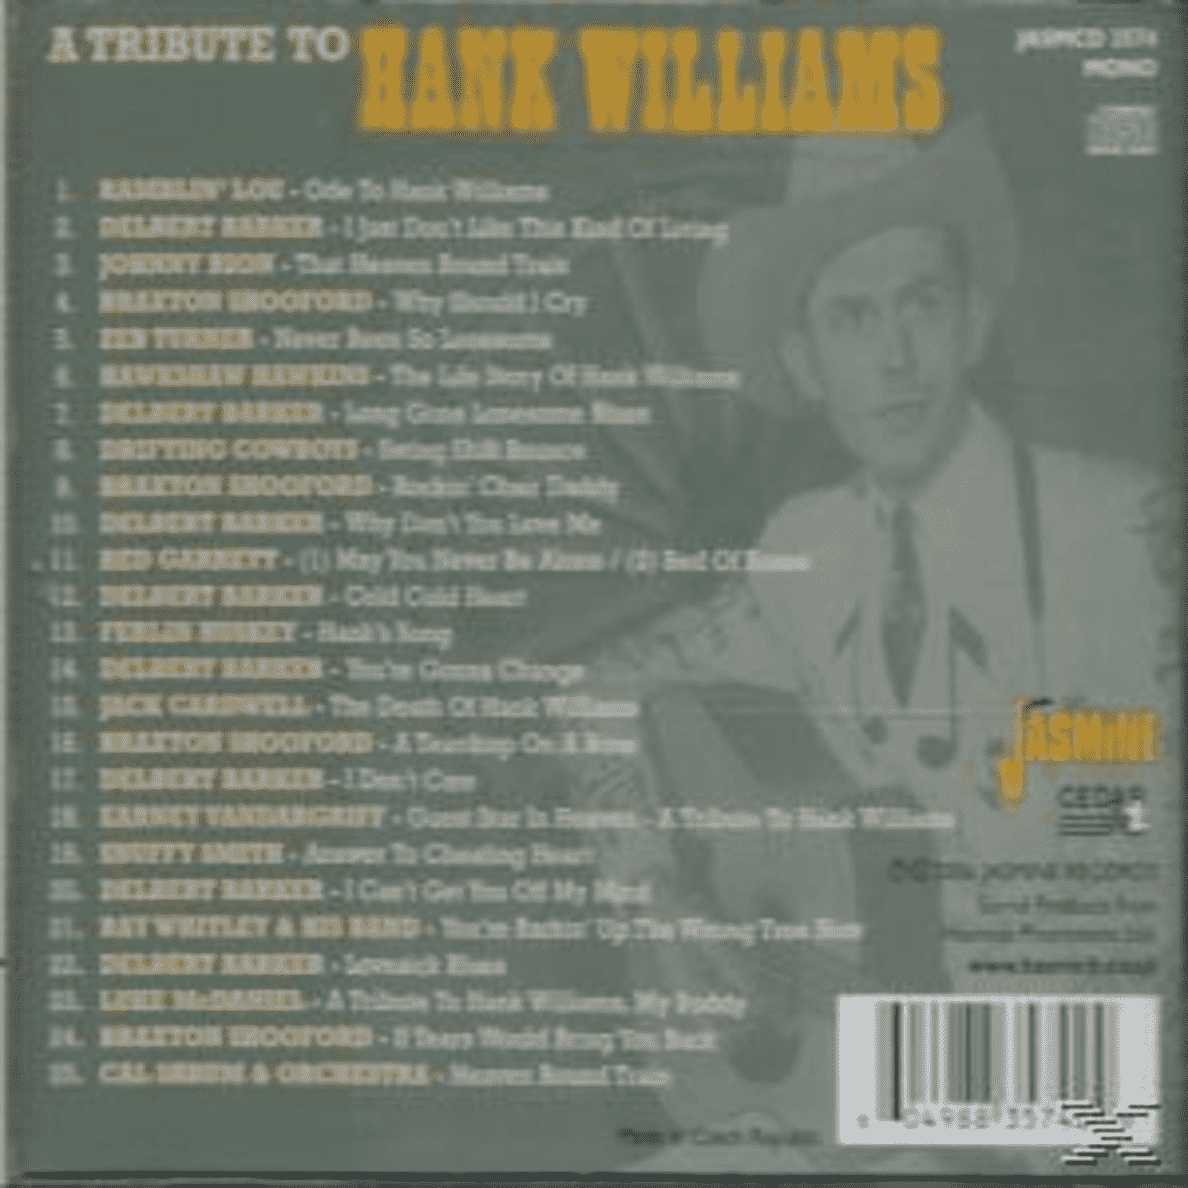 A Tribute To-Hank Williams